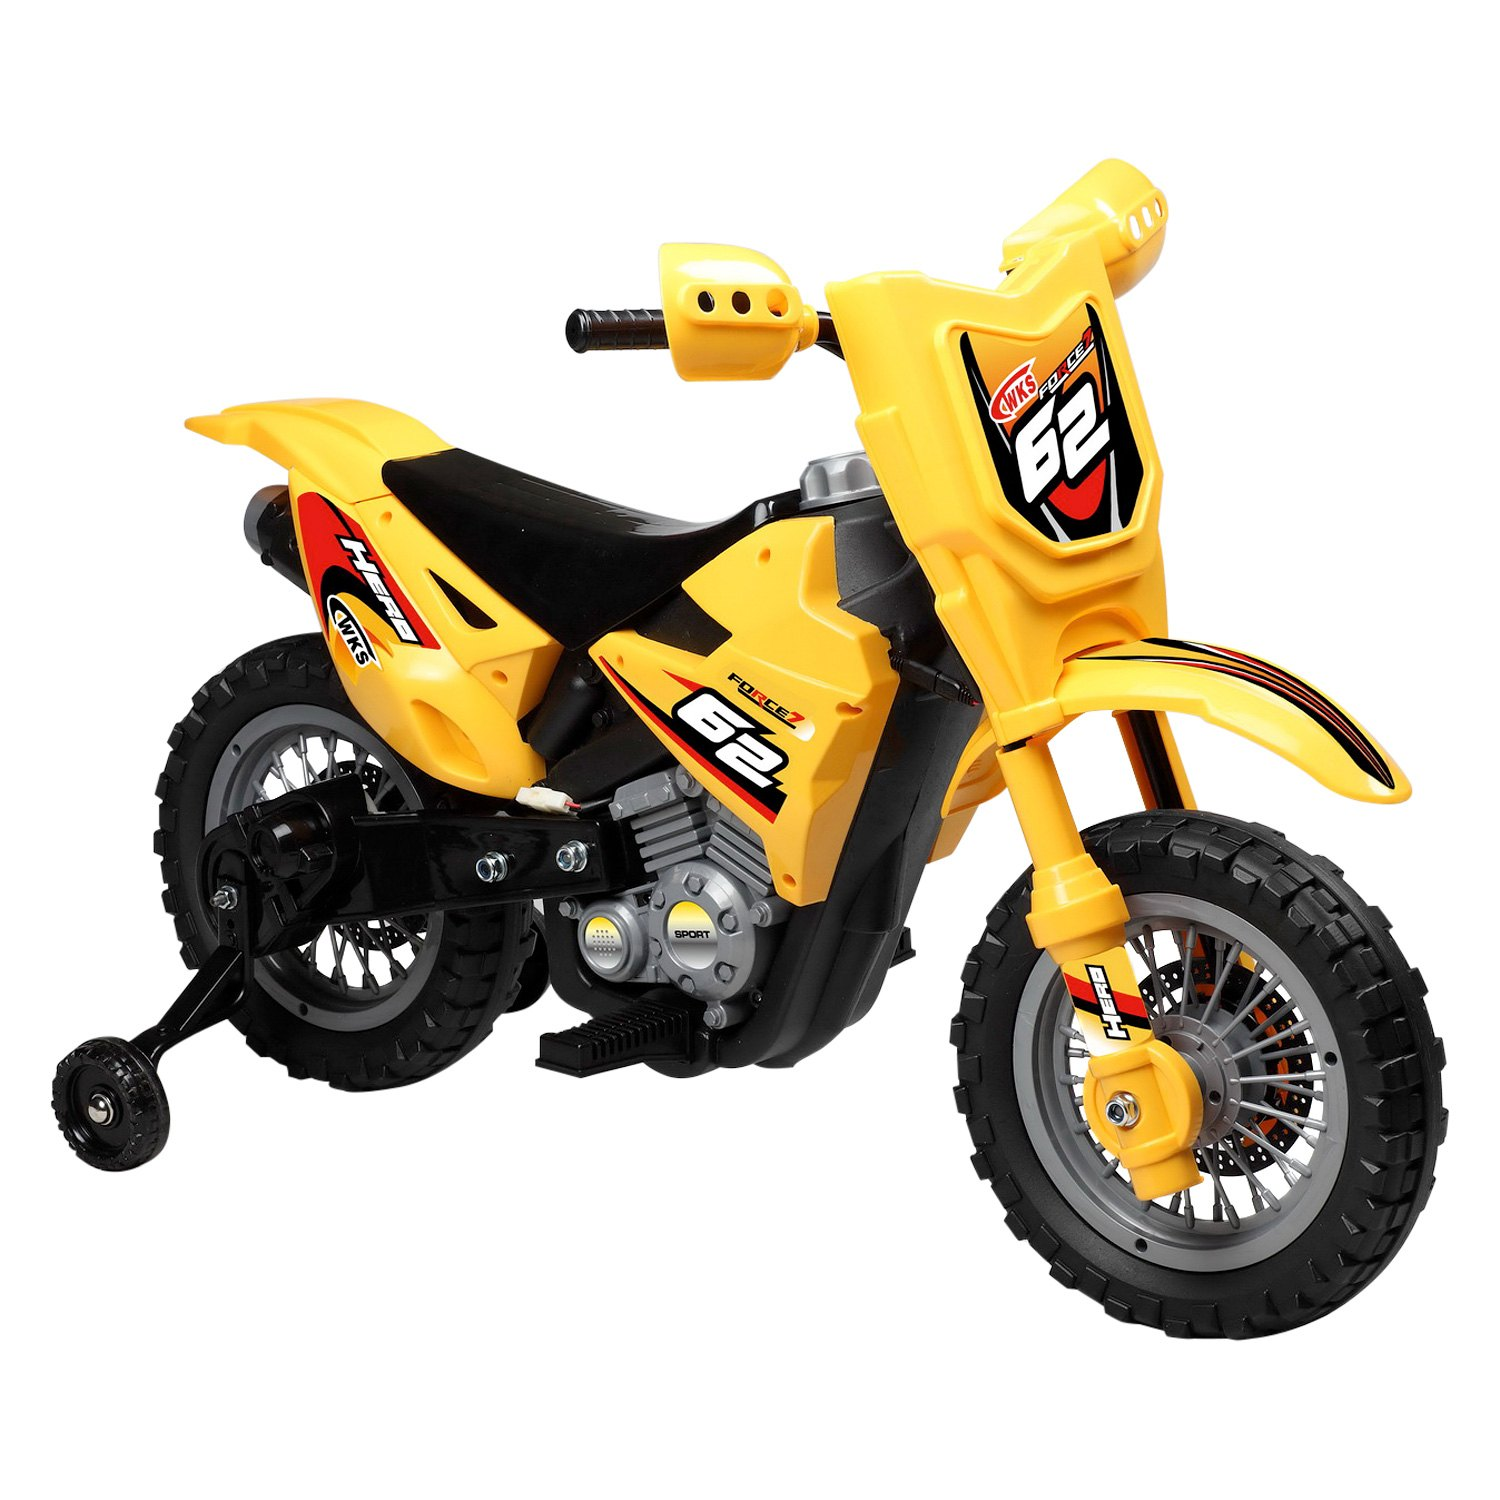 best ride on cars mini dirt bike yellow 6v 6v yellow. Black Bedroom Furniture Sets. Home Design Ideas